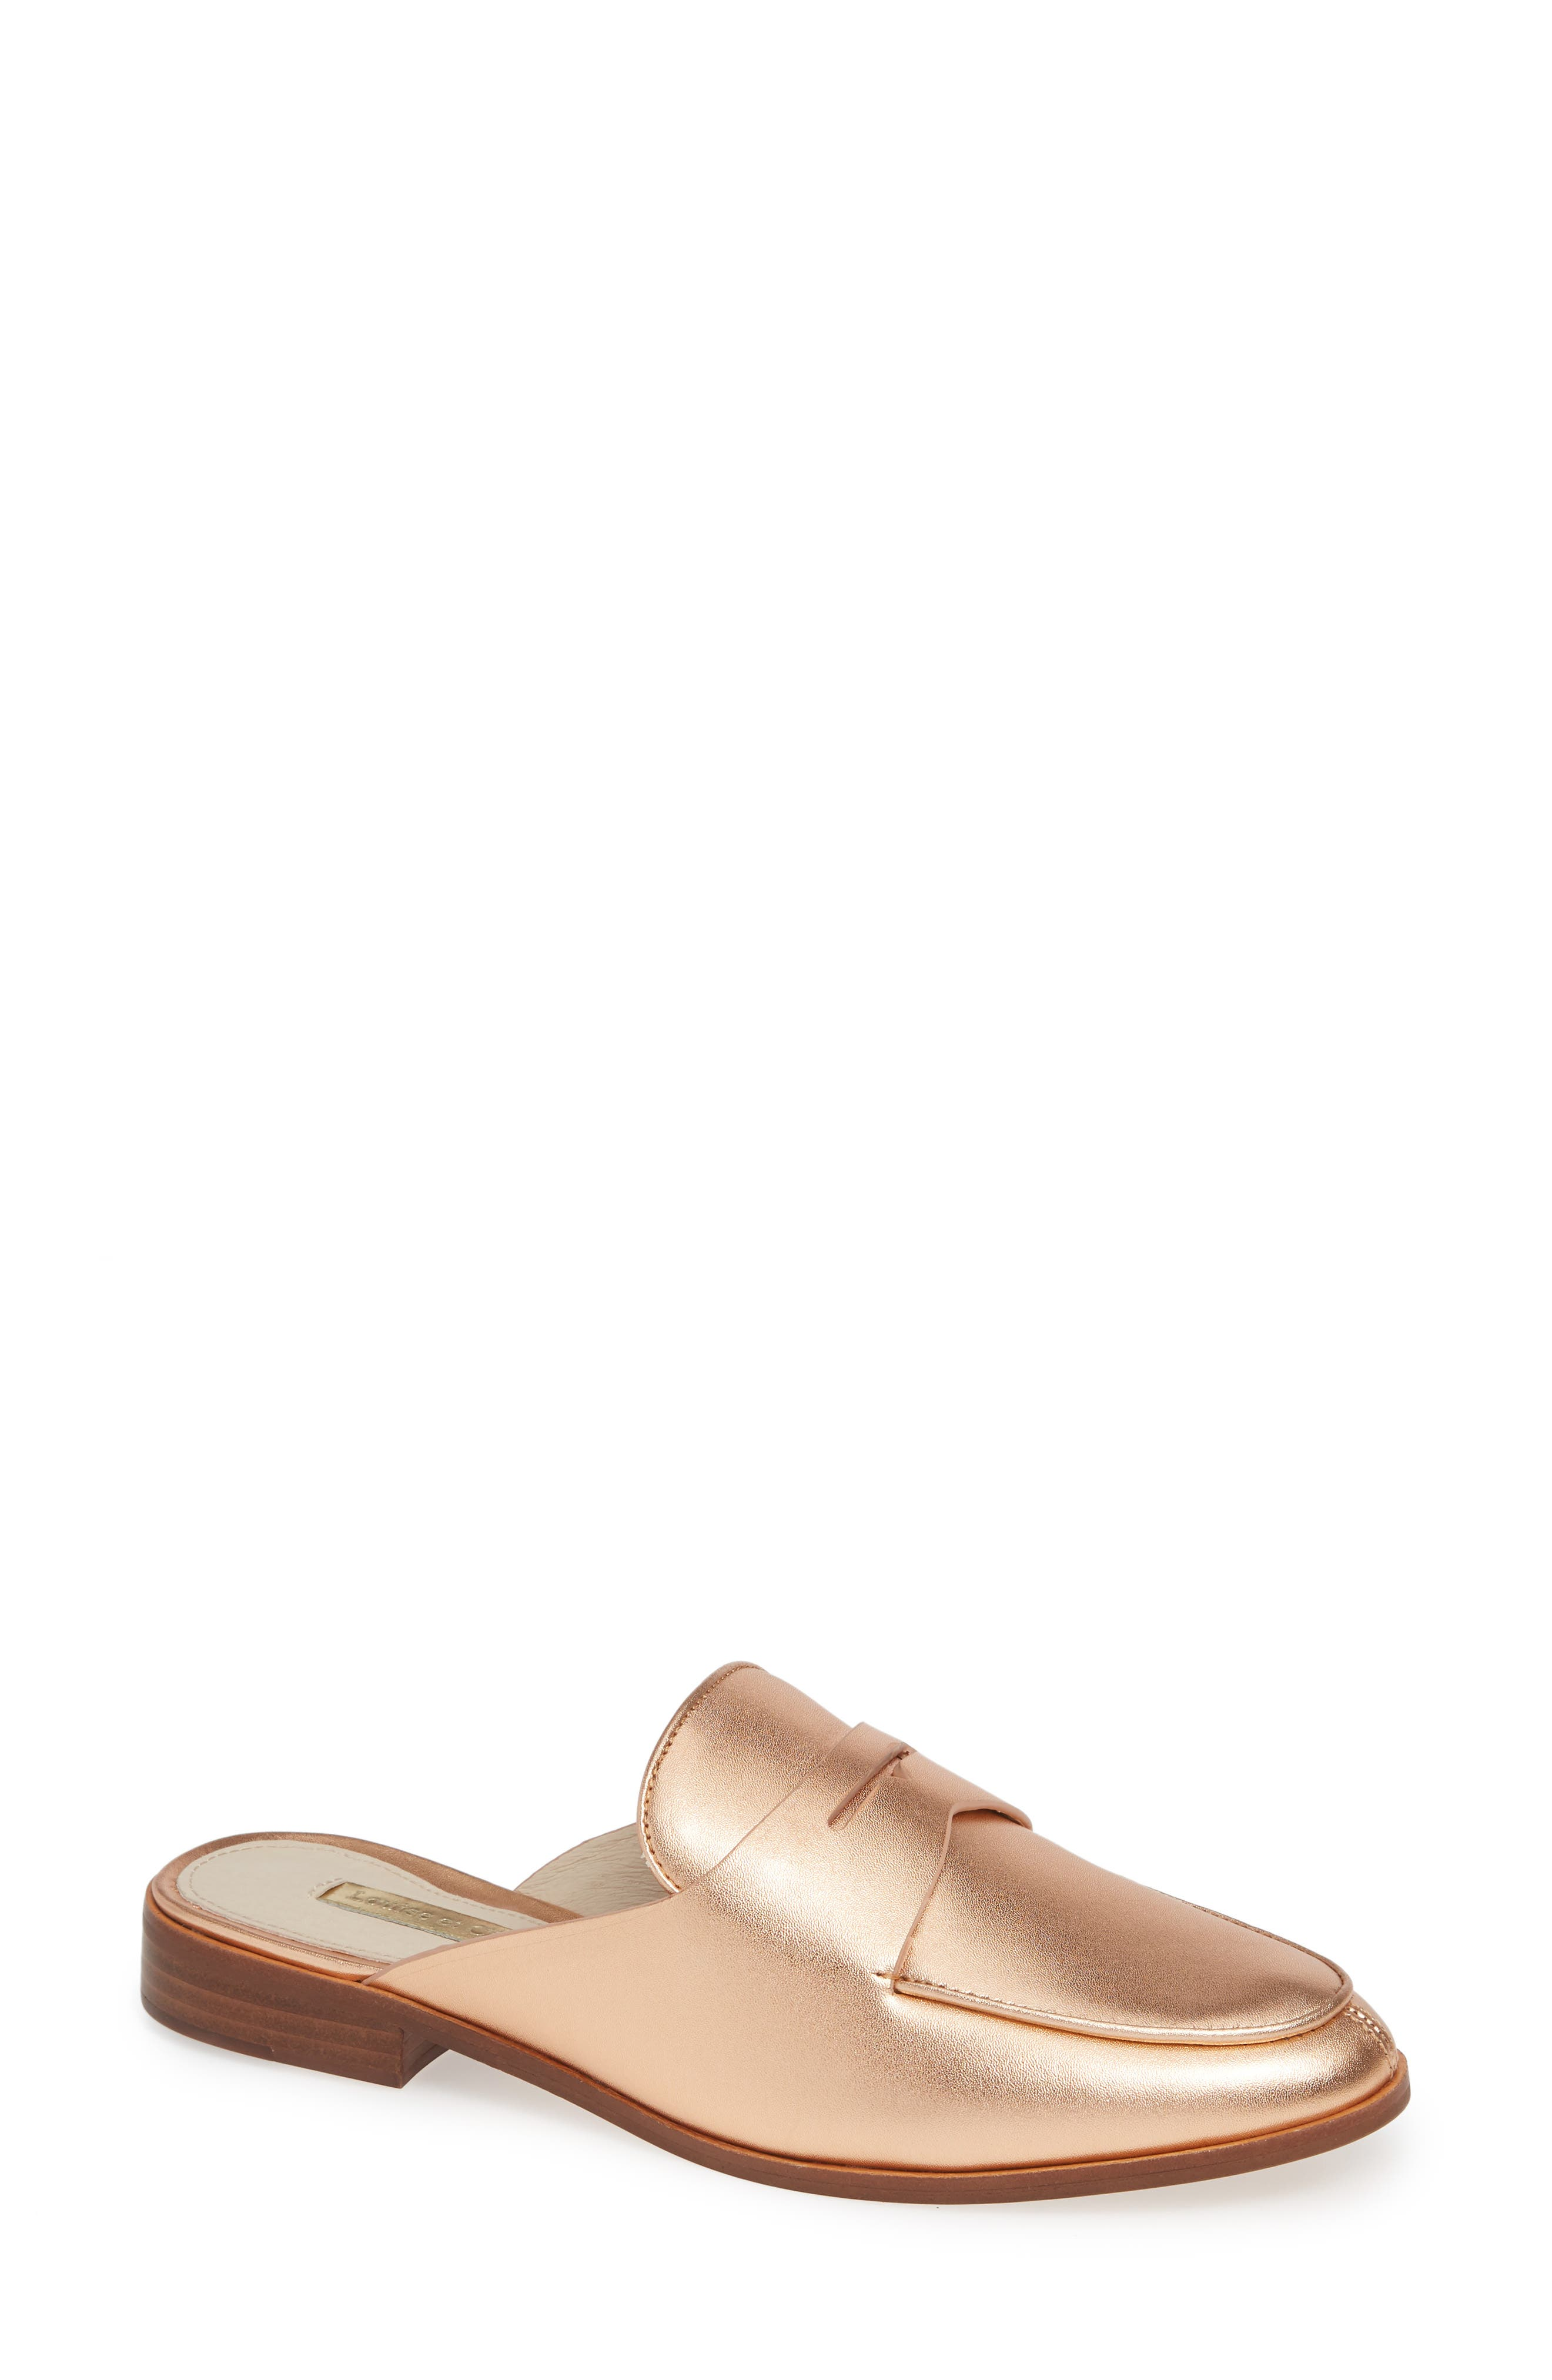 Image of Louise et Cie Dugan Flat Loafer Mule